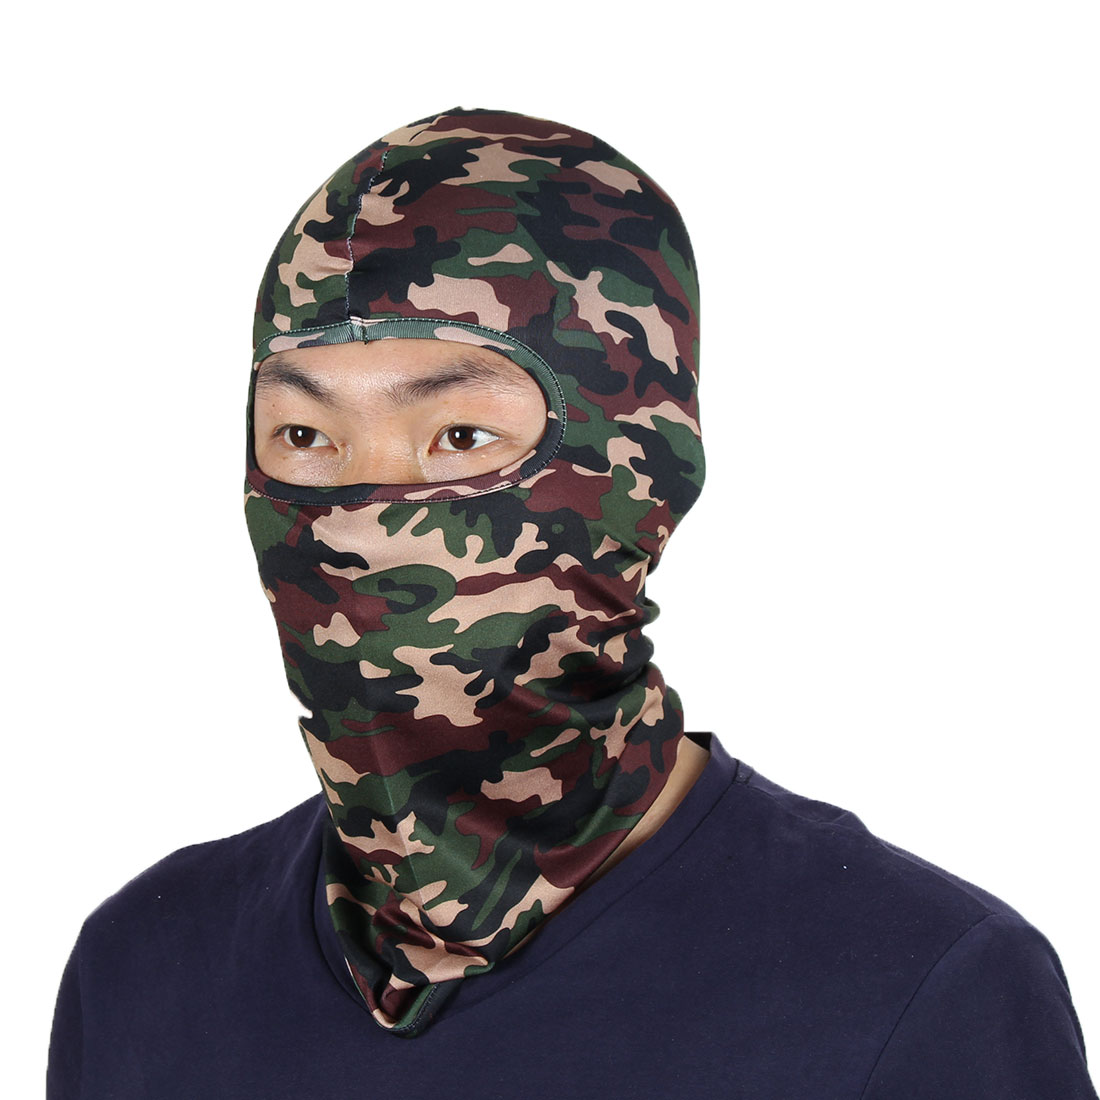 Full Coverage Face Mask Outdoor Neck Protector Hood Helmet Balaclava Camouflage